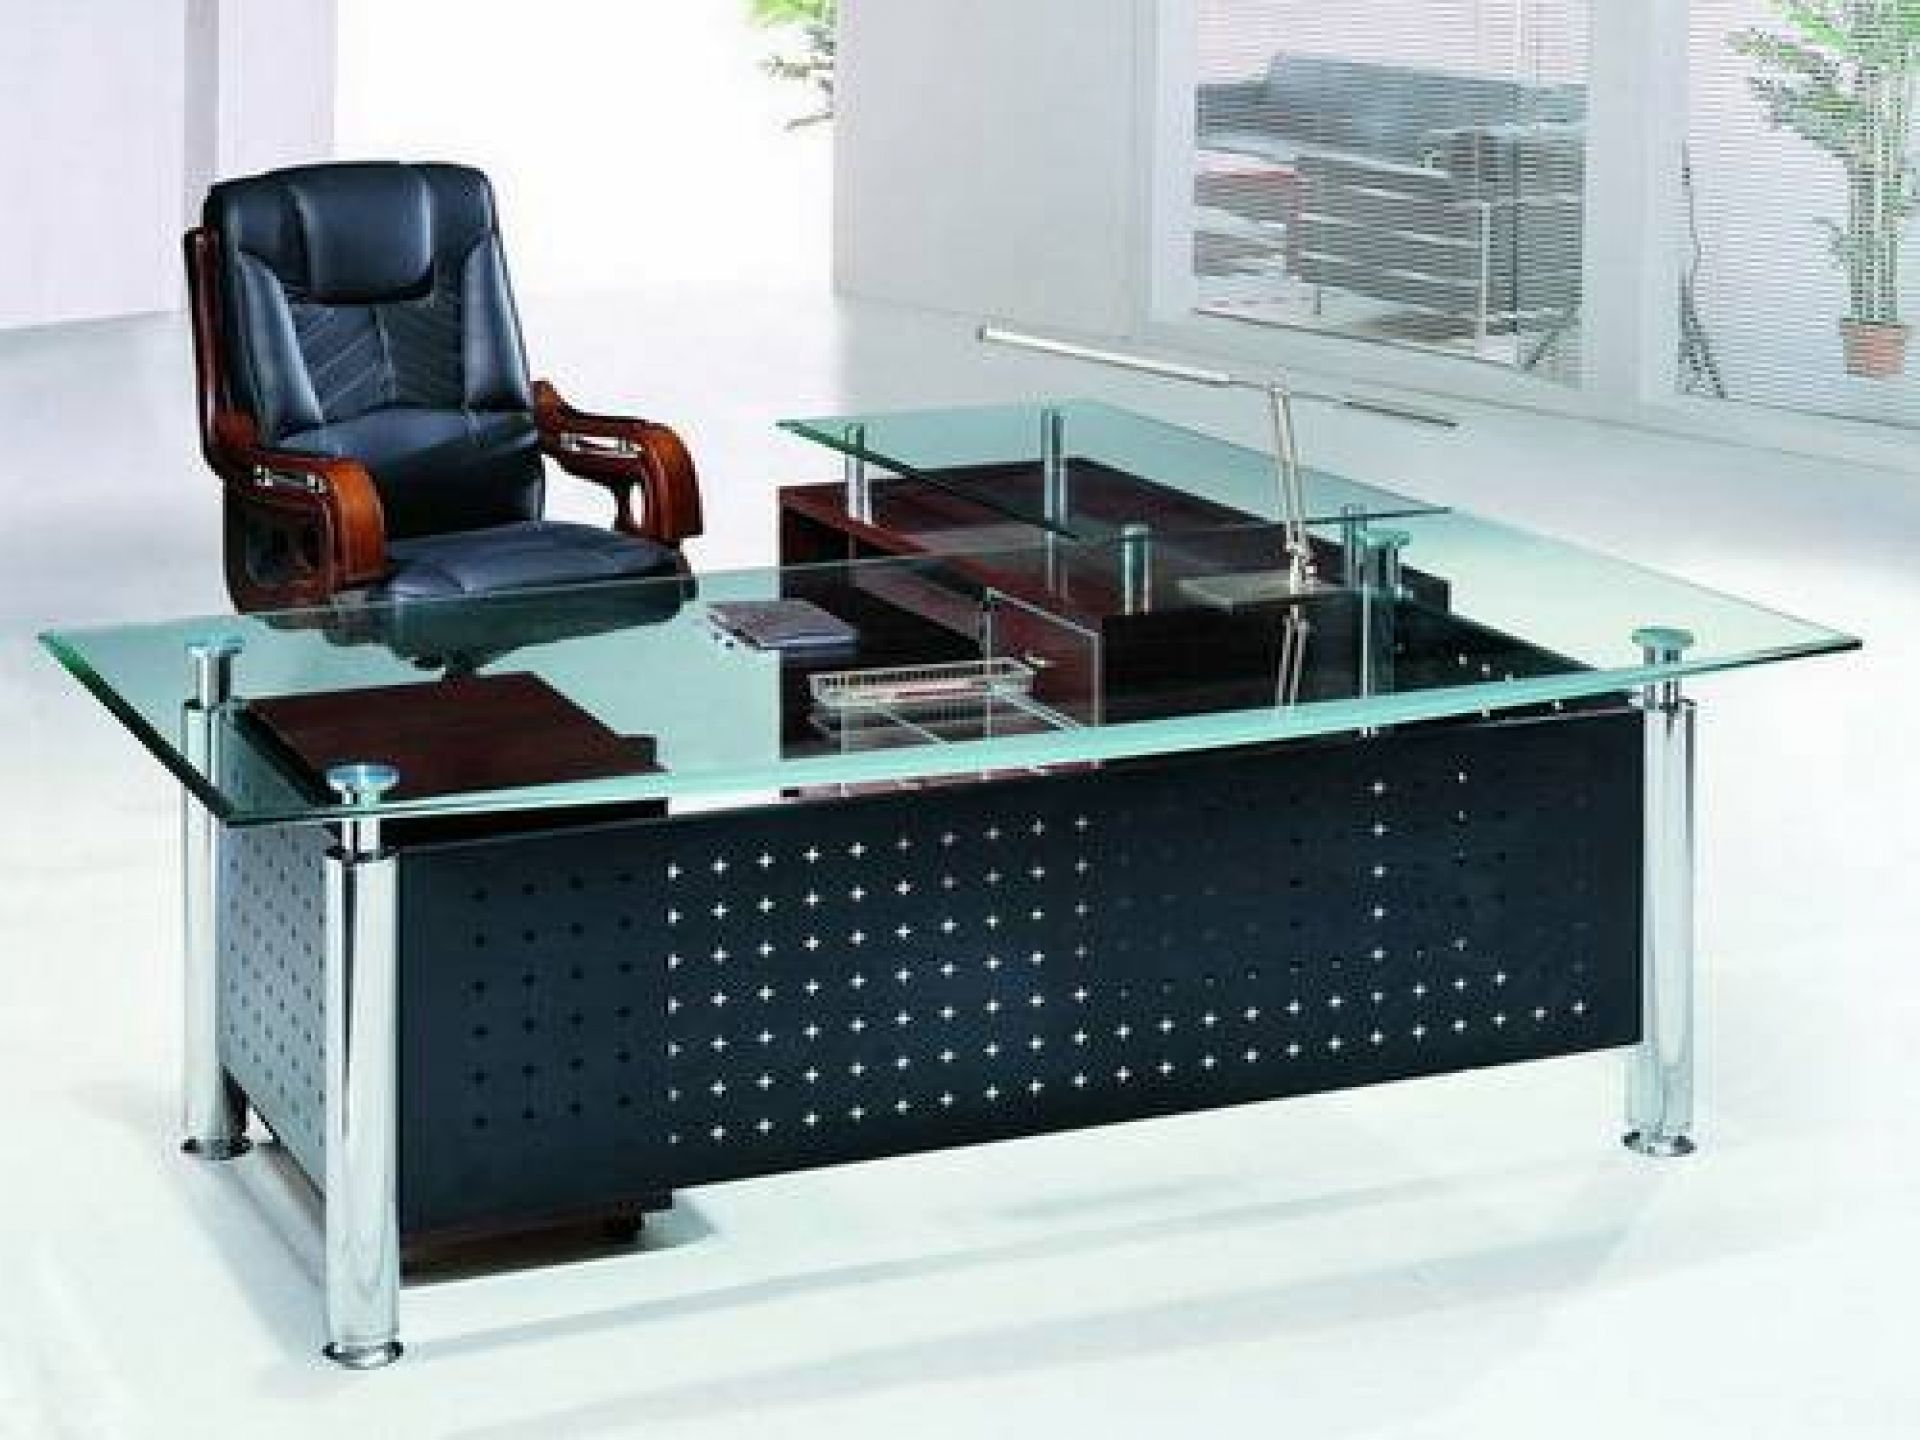 stylish black leather office chair added contemporary glass top  - stylish black leather office chair added contemporary glass top desk insmall office decorating views